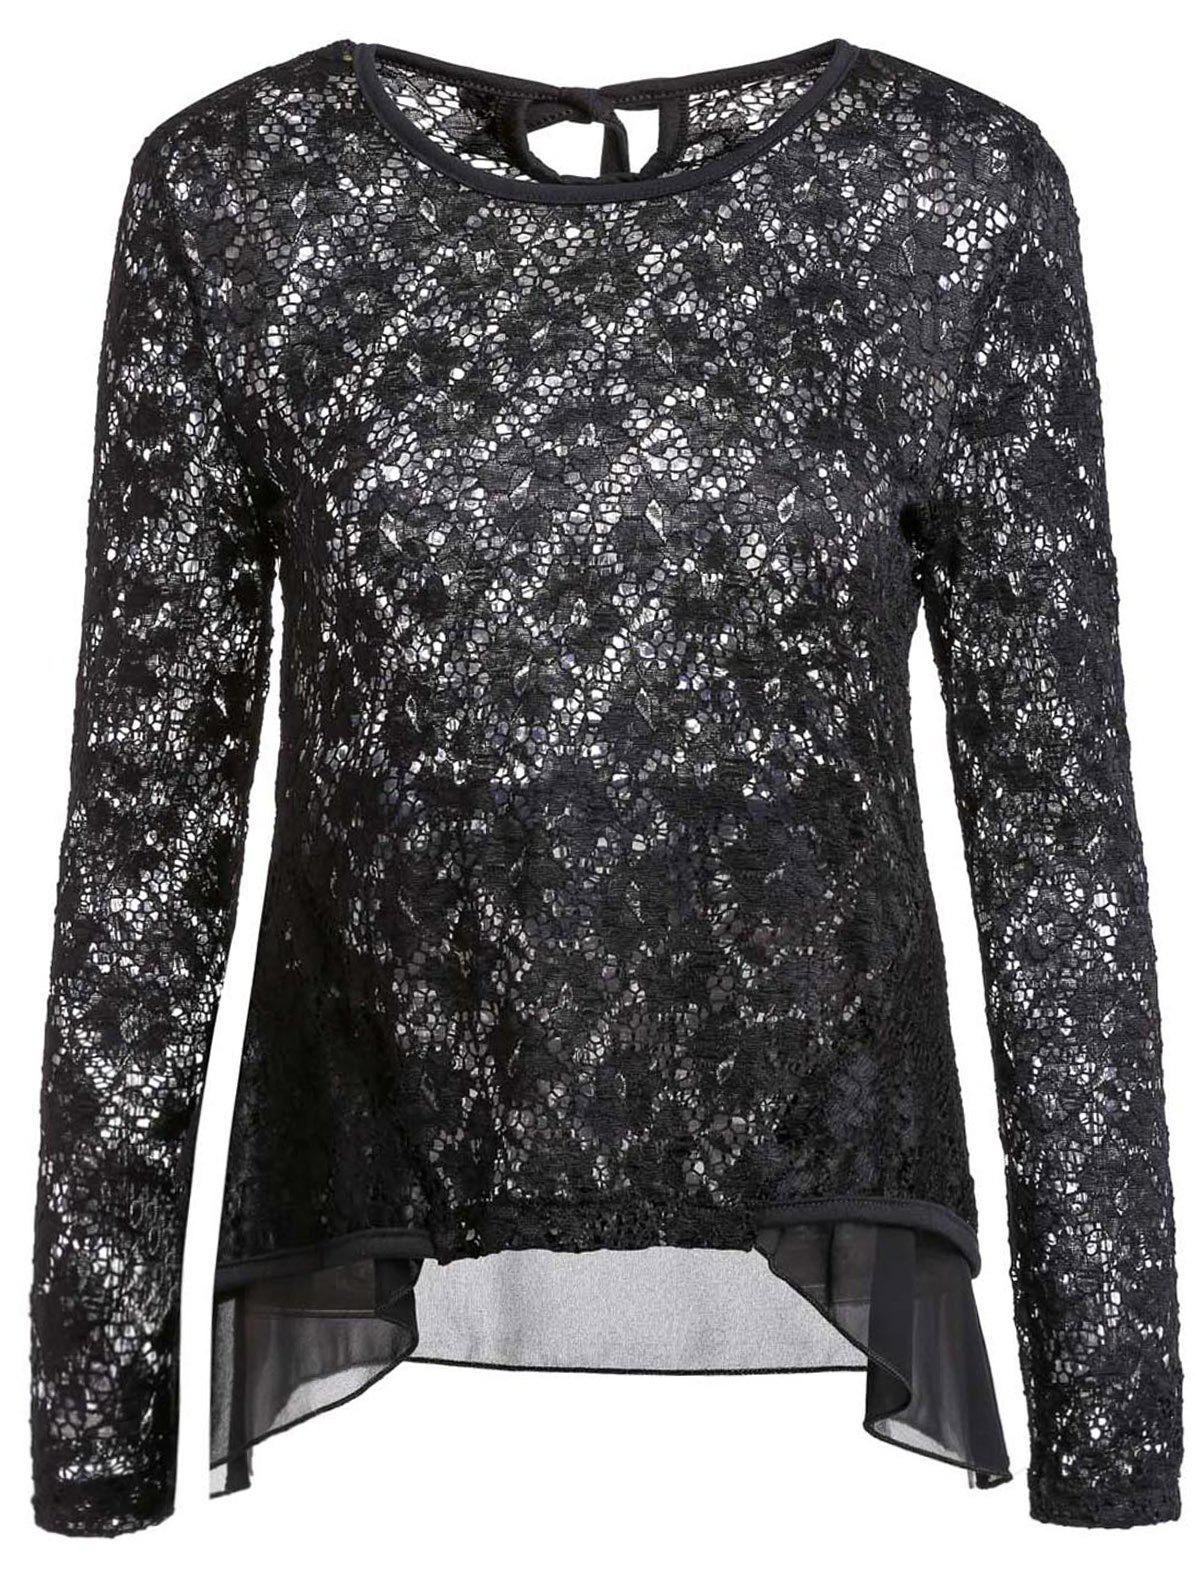 Sexy Long Sleeve Scoop Neck Lace Ruffled Blouse For Women